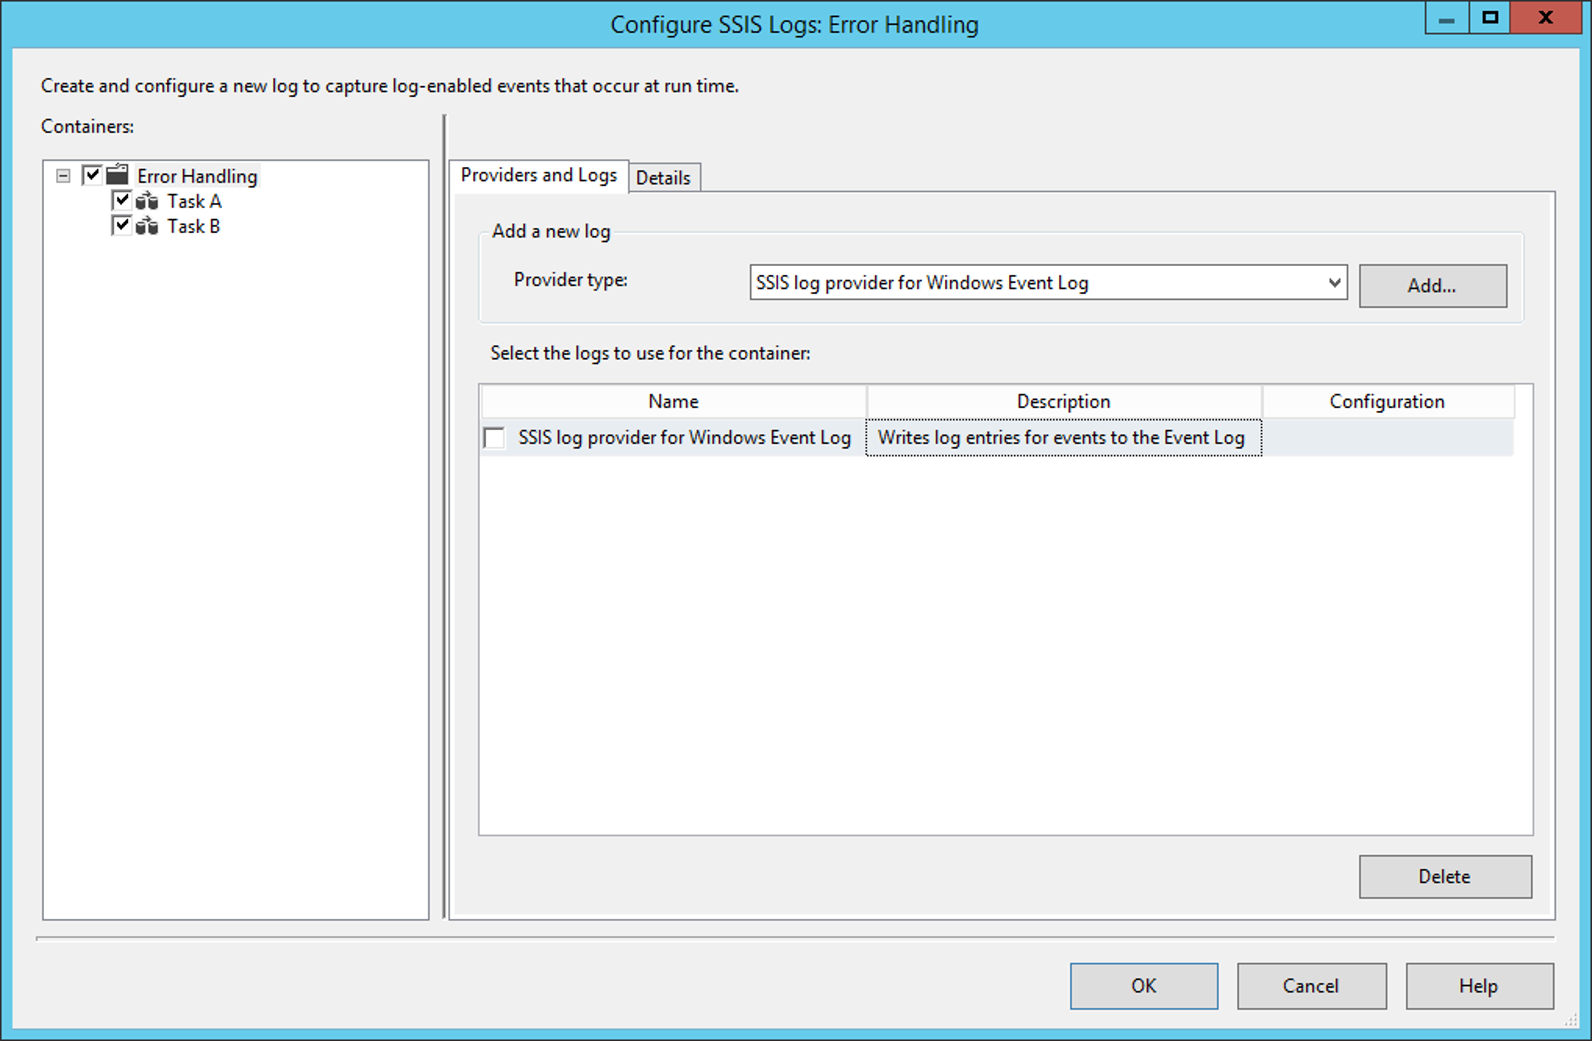 Screenshot of Configure SSIS Logs: Error Handling